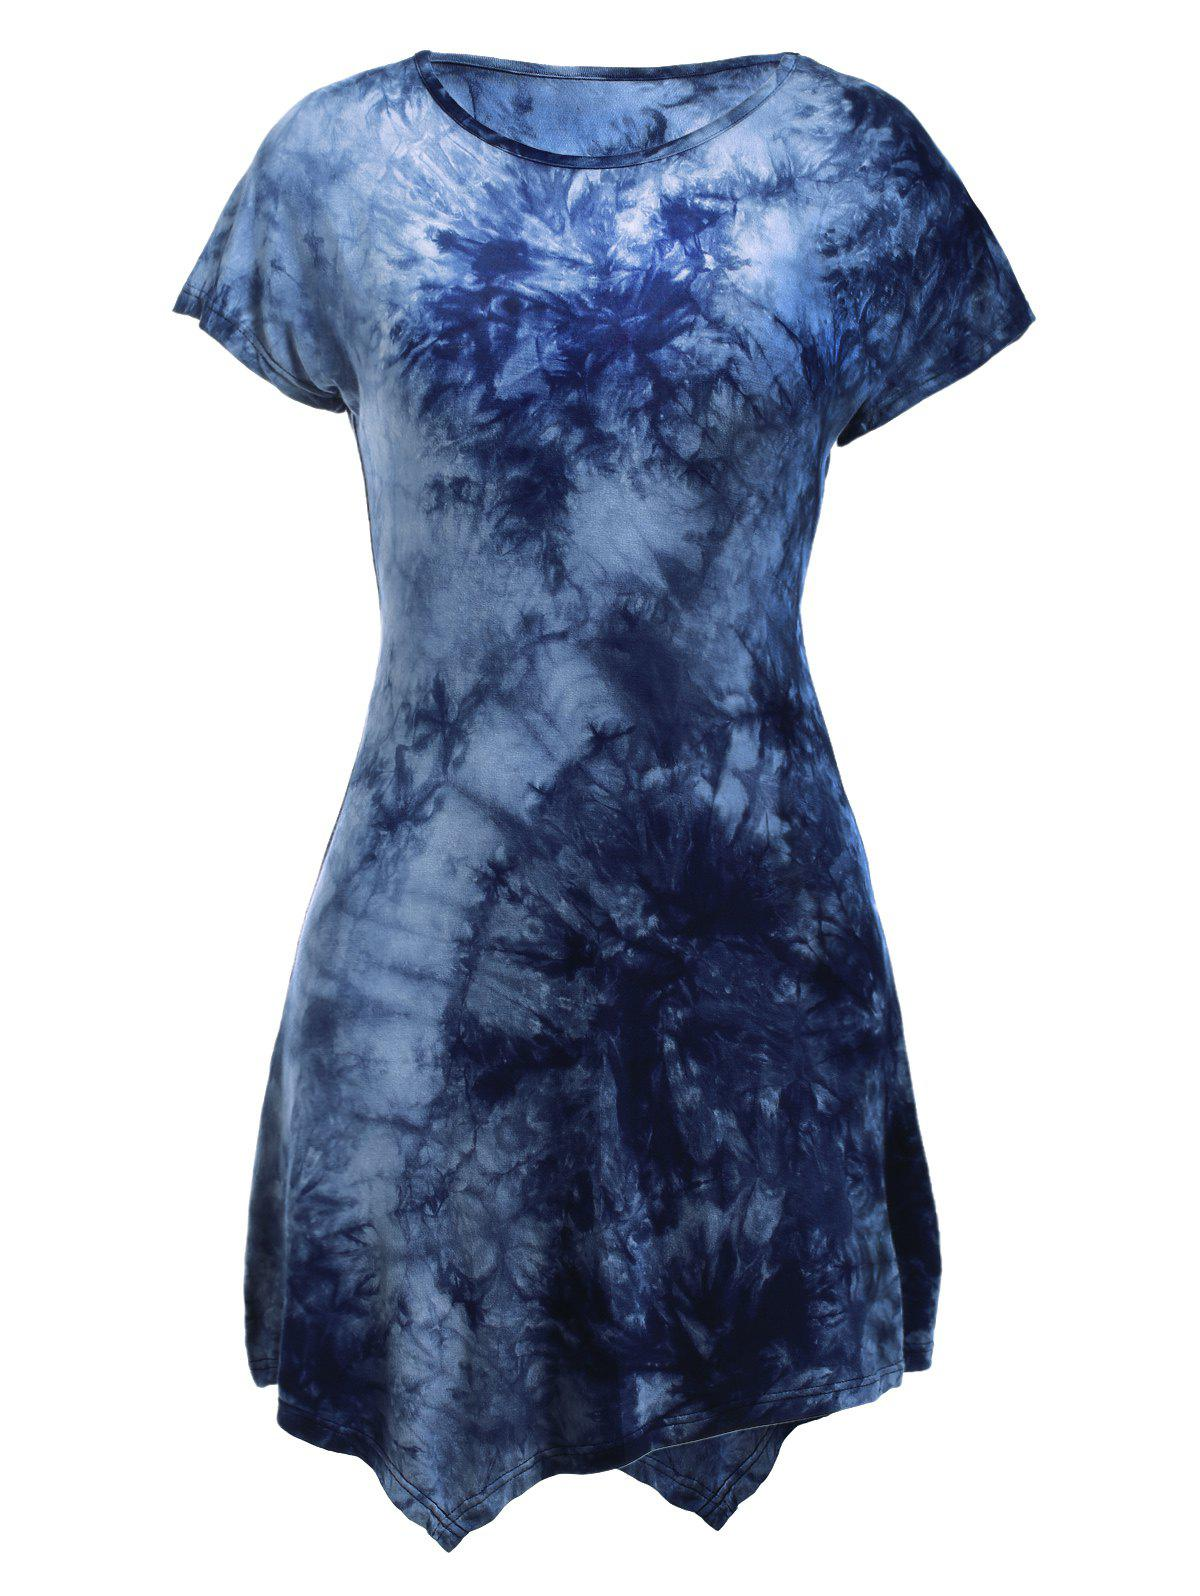 Round Neck Short Sleeve Tie-Dyed Asymmetric Dress - BLUE XL